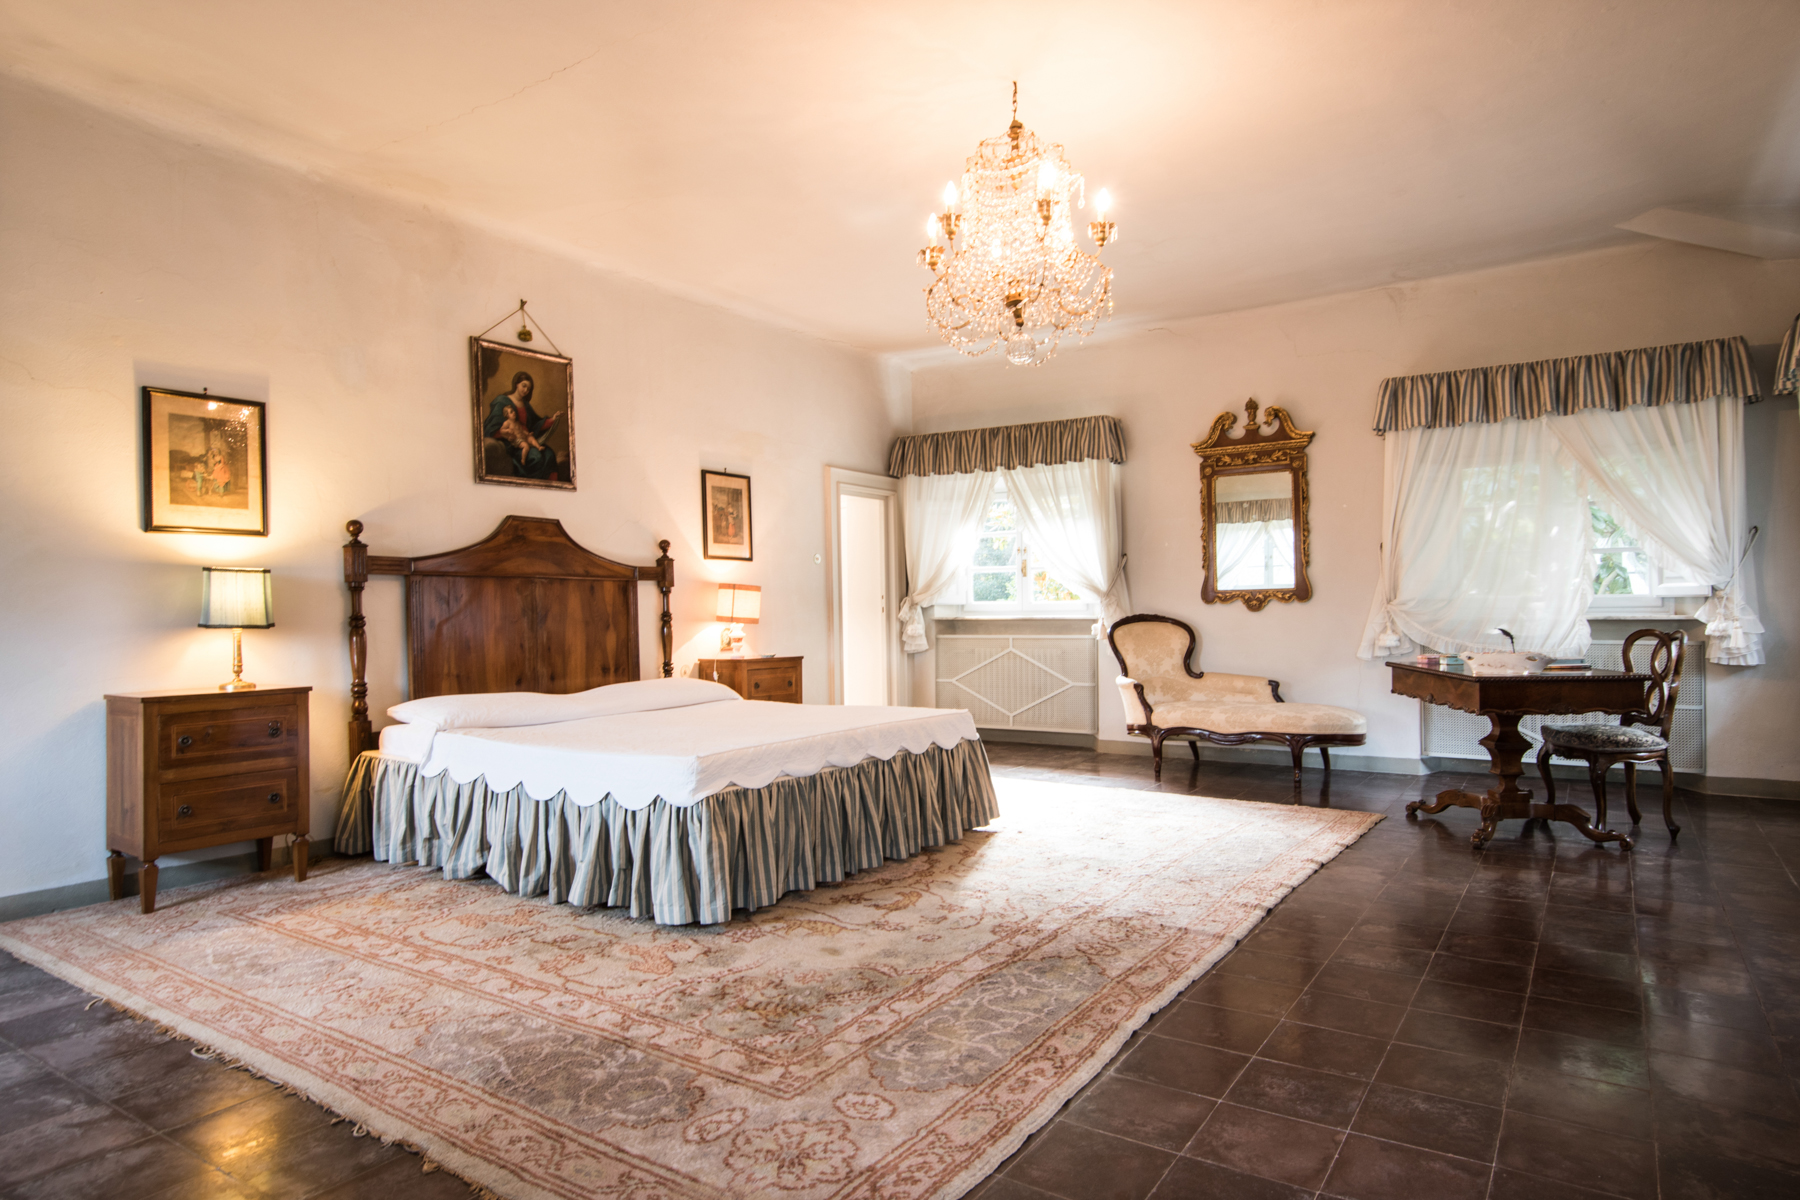 Additional photo for property listing at Charming 18th century villa in Lucca countryside Loc. Montuolo Lucca, Lucca 55100 Italien